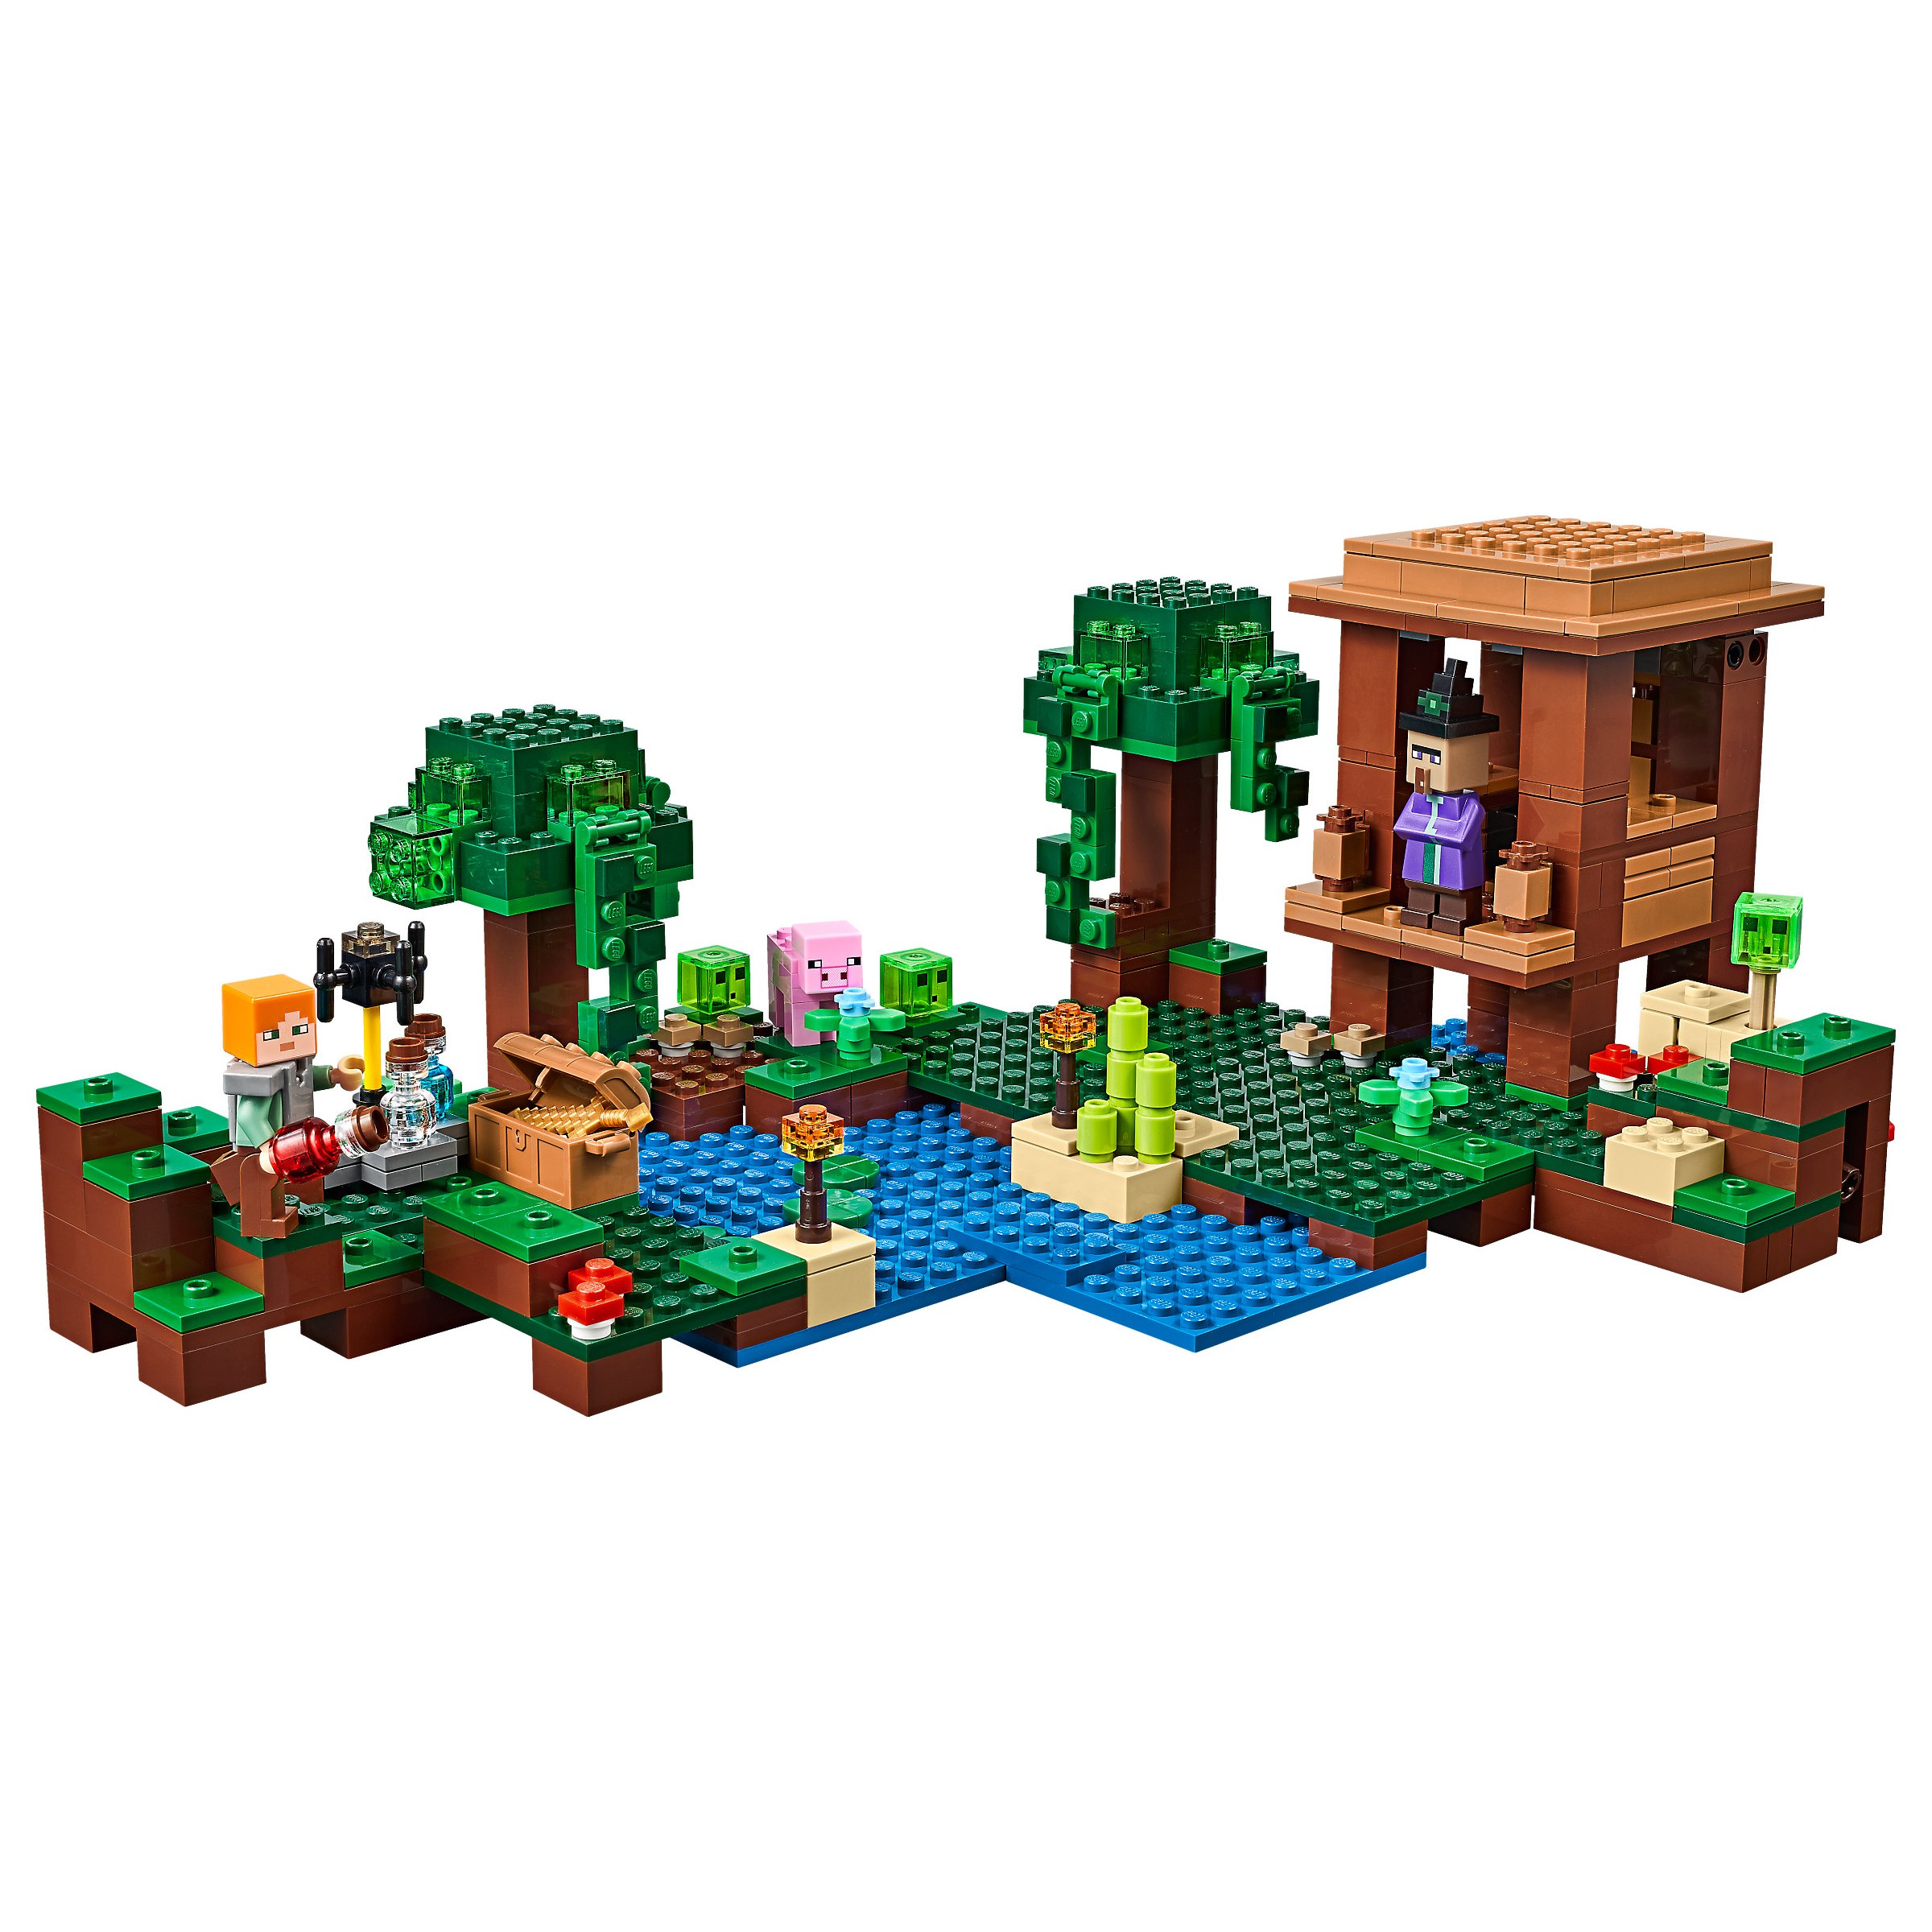 Lego 21133 Minecraft The Witch Hut At Hobby Warehouse